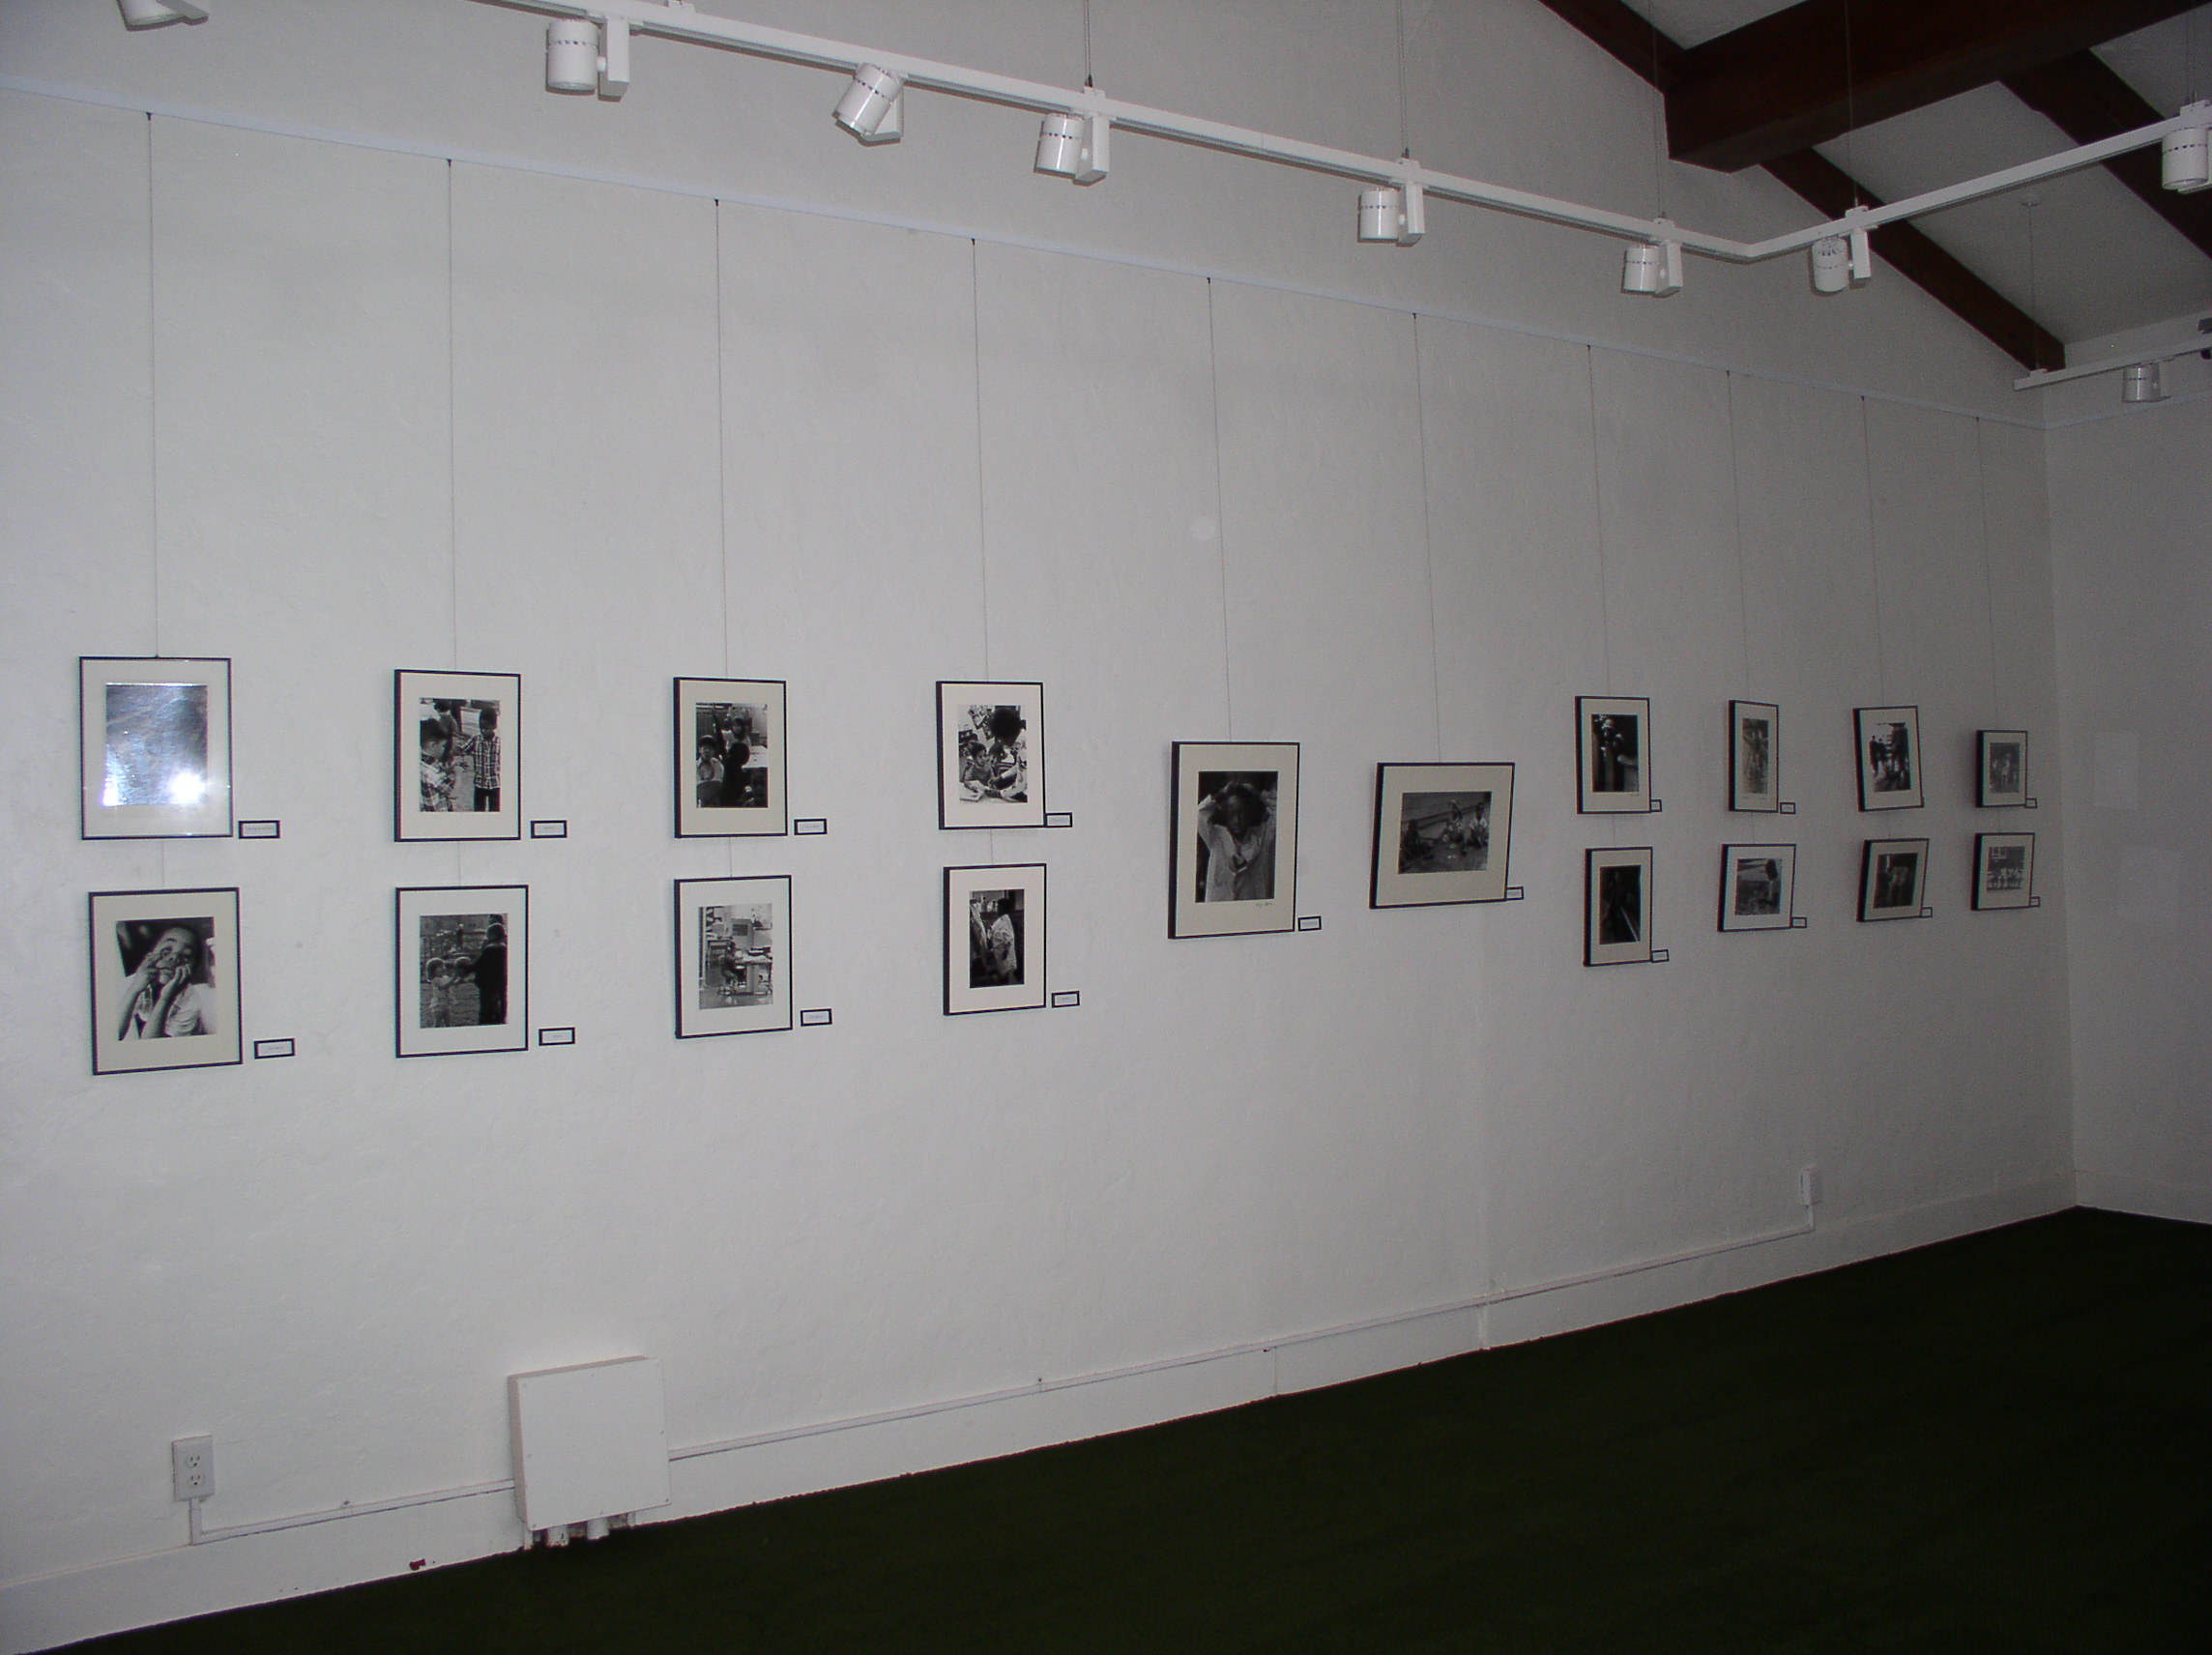 Image from exhibition